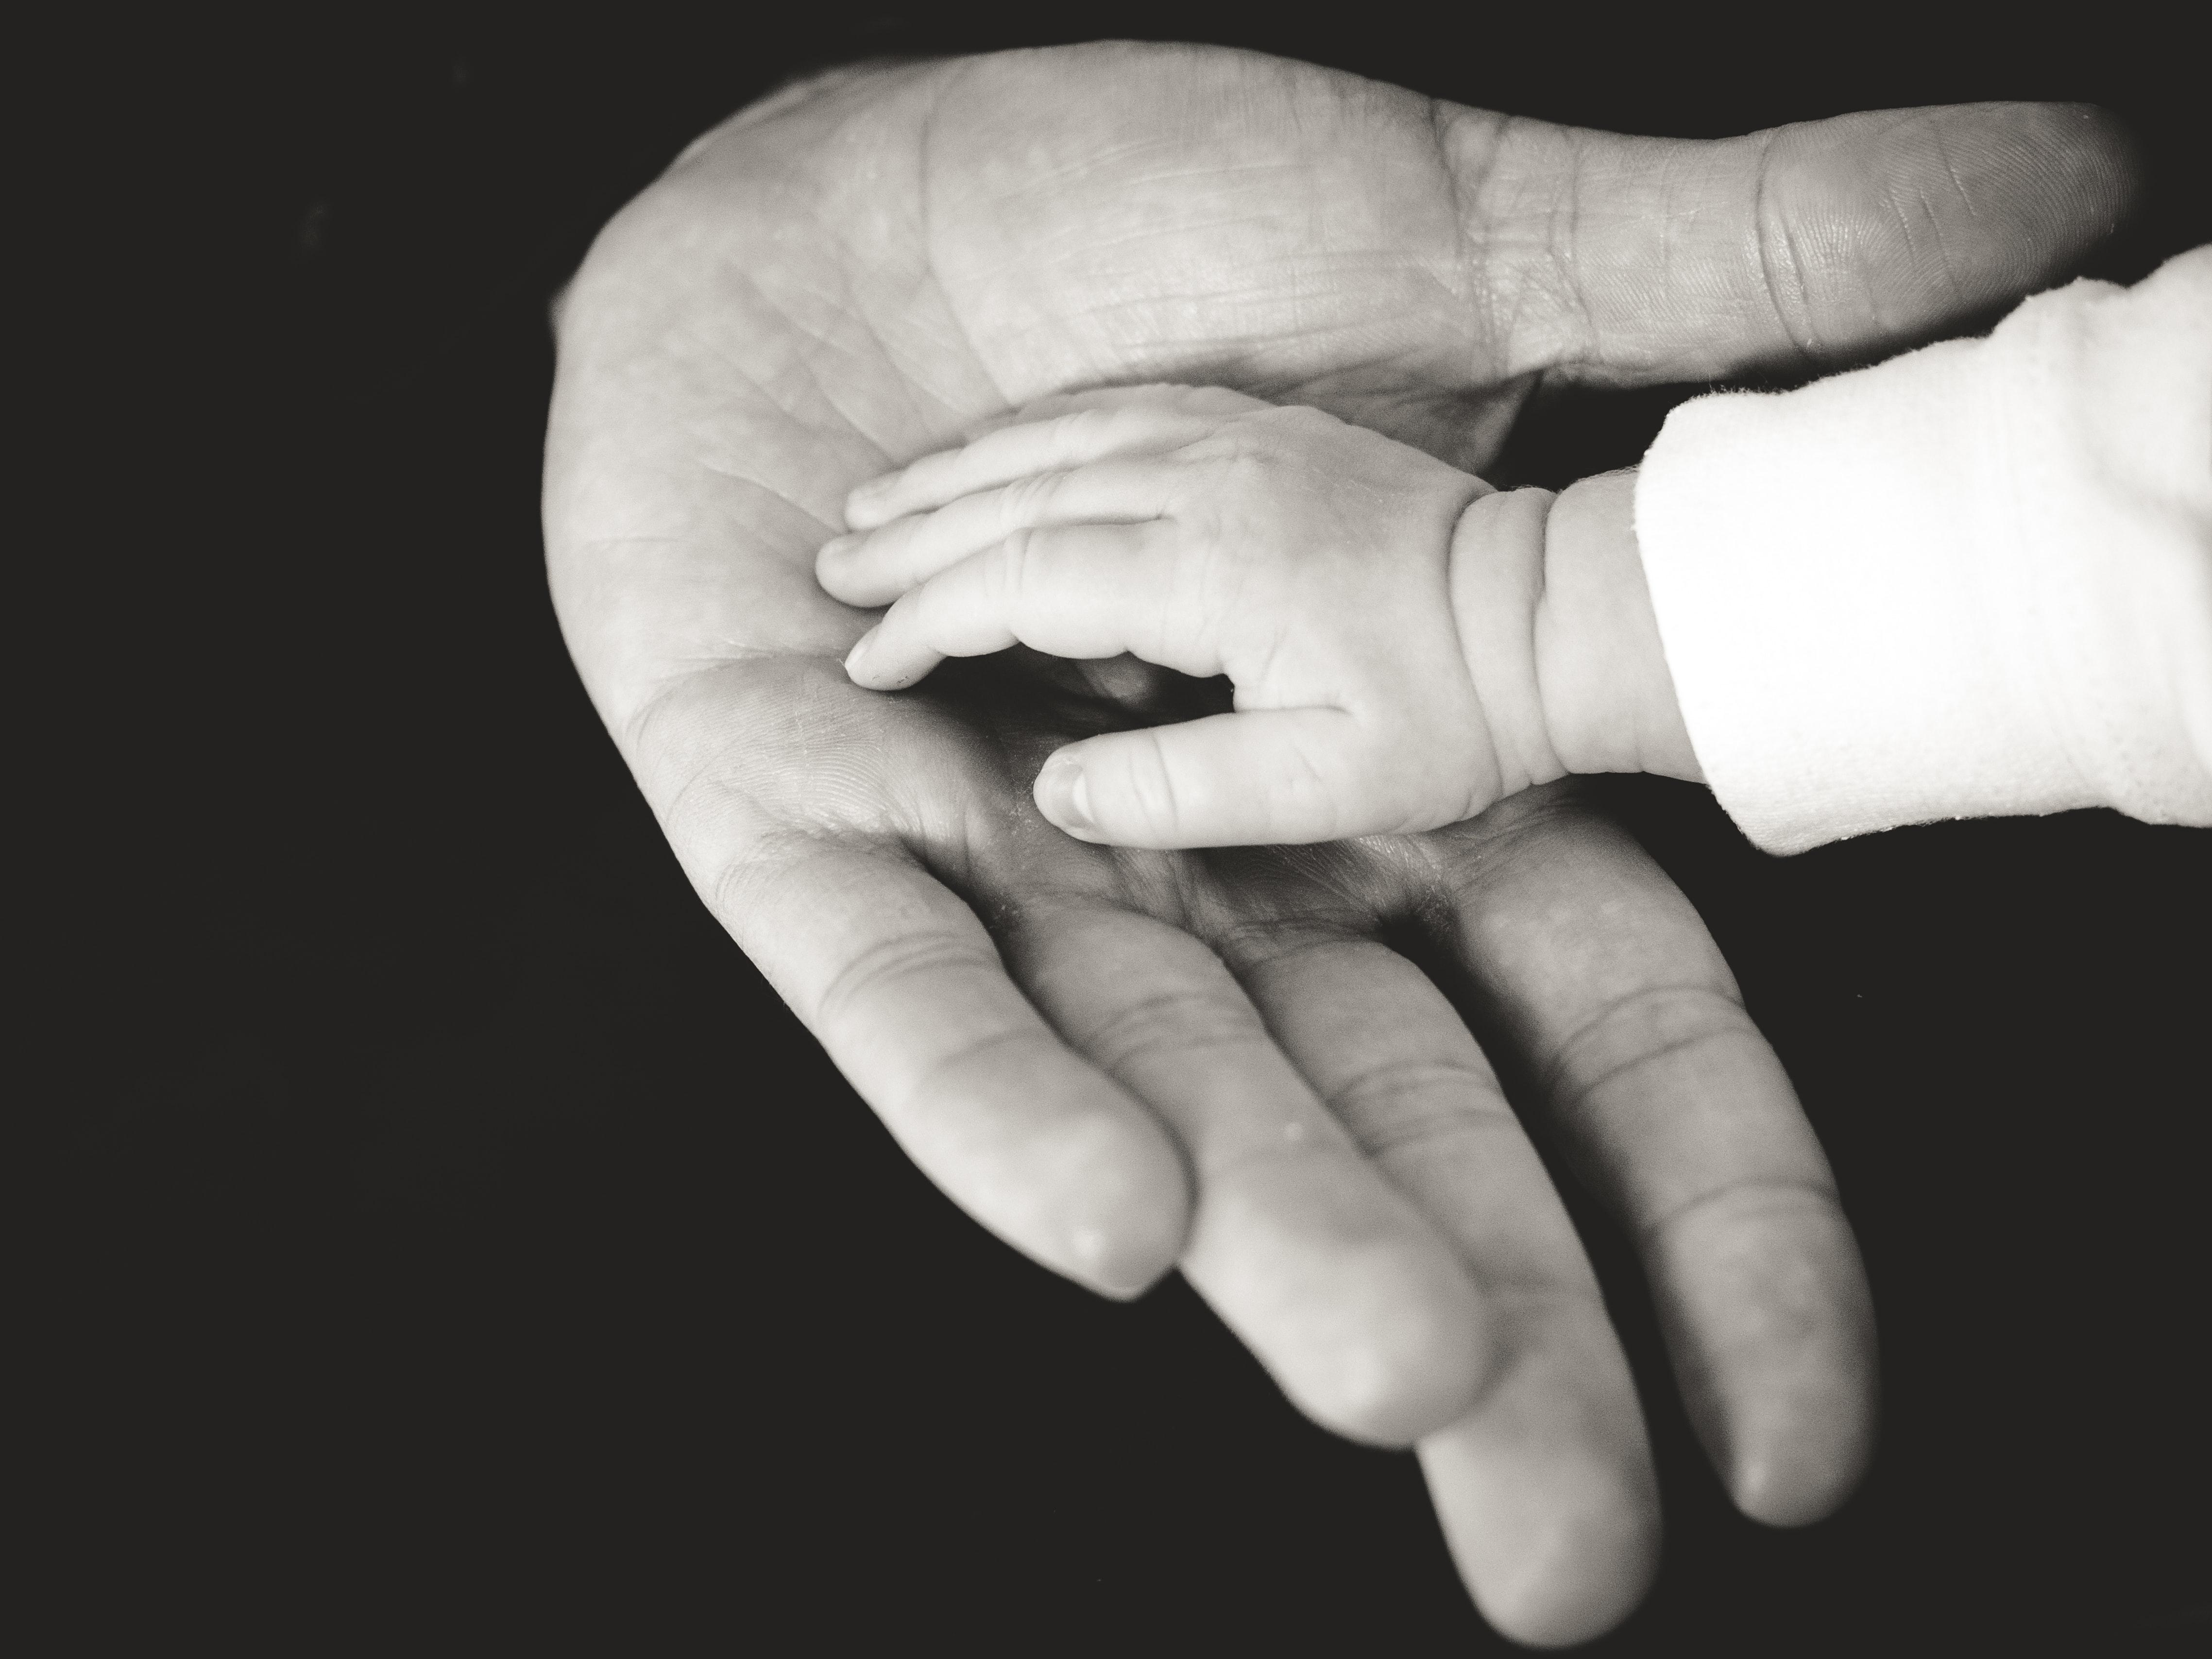 Baby's hand in an adult's